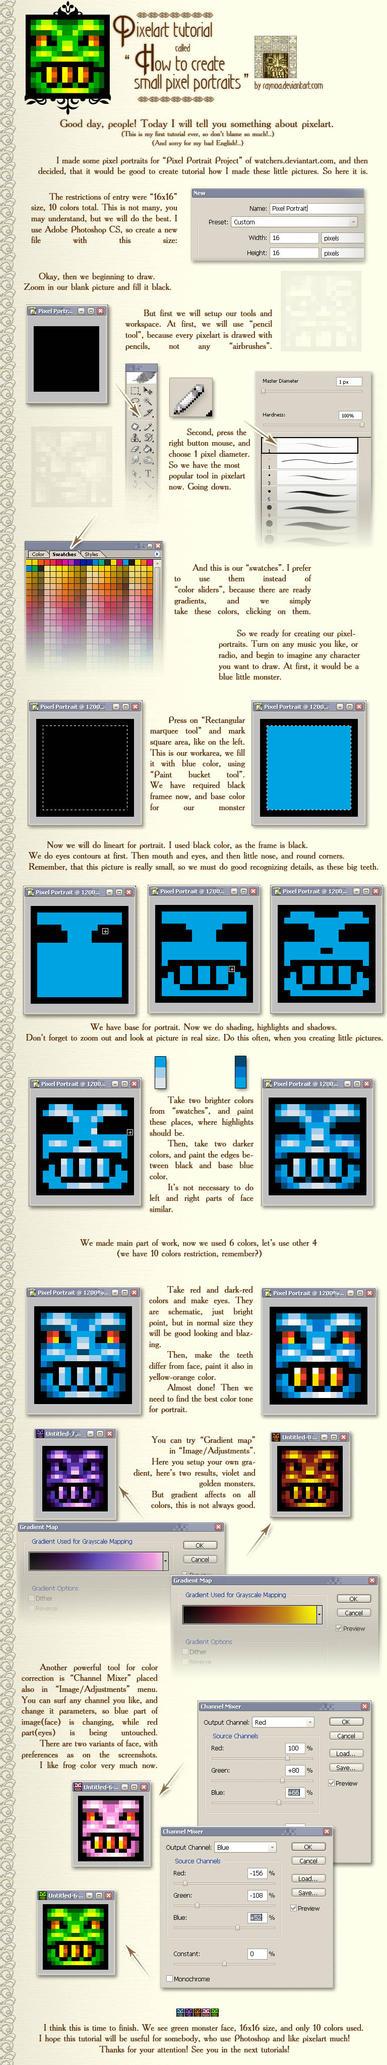 Pixel Portraits Project tutor by raynoa